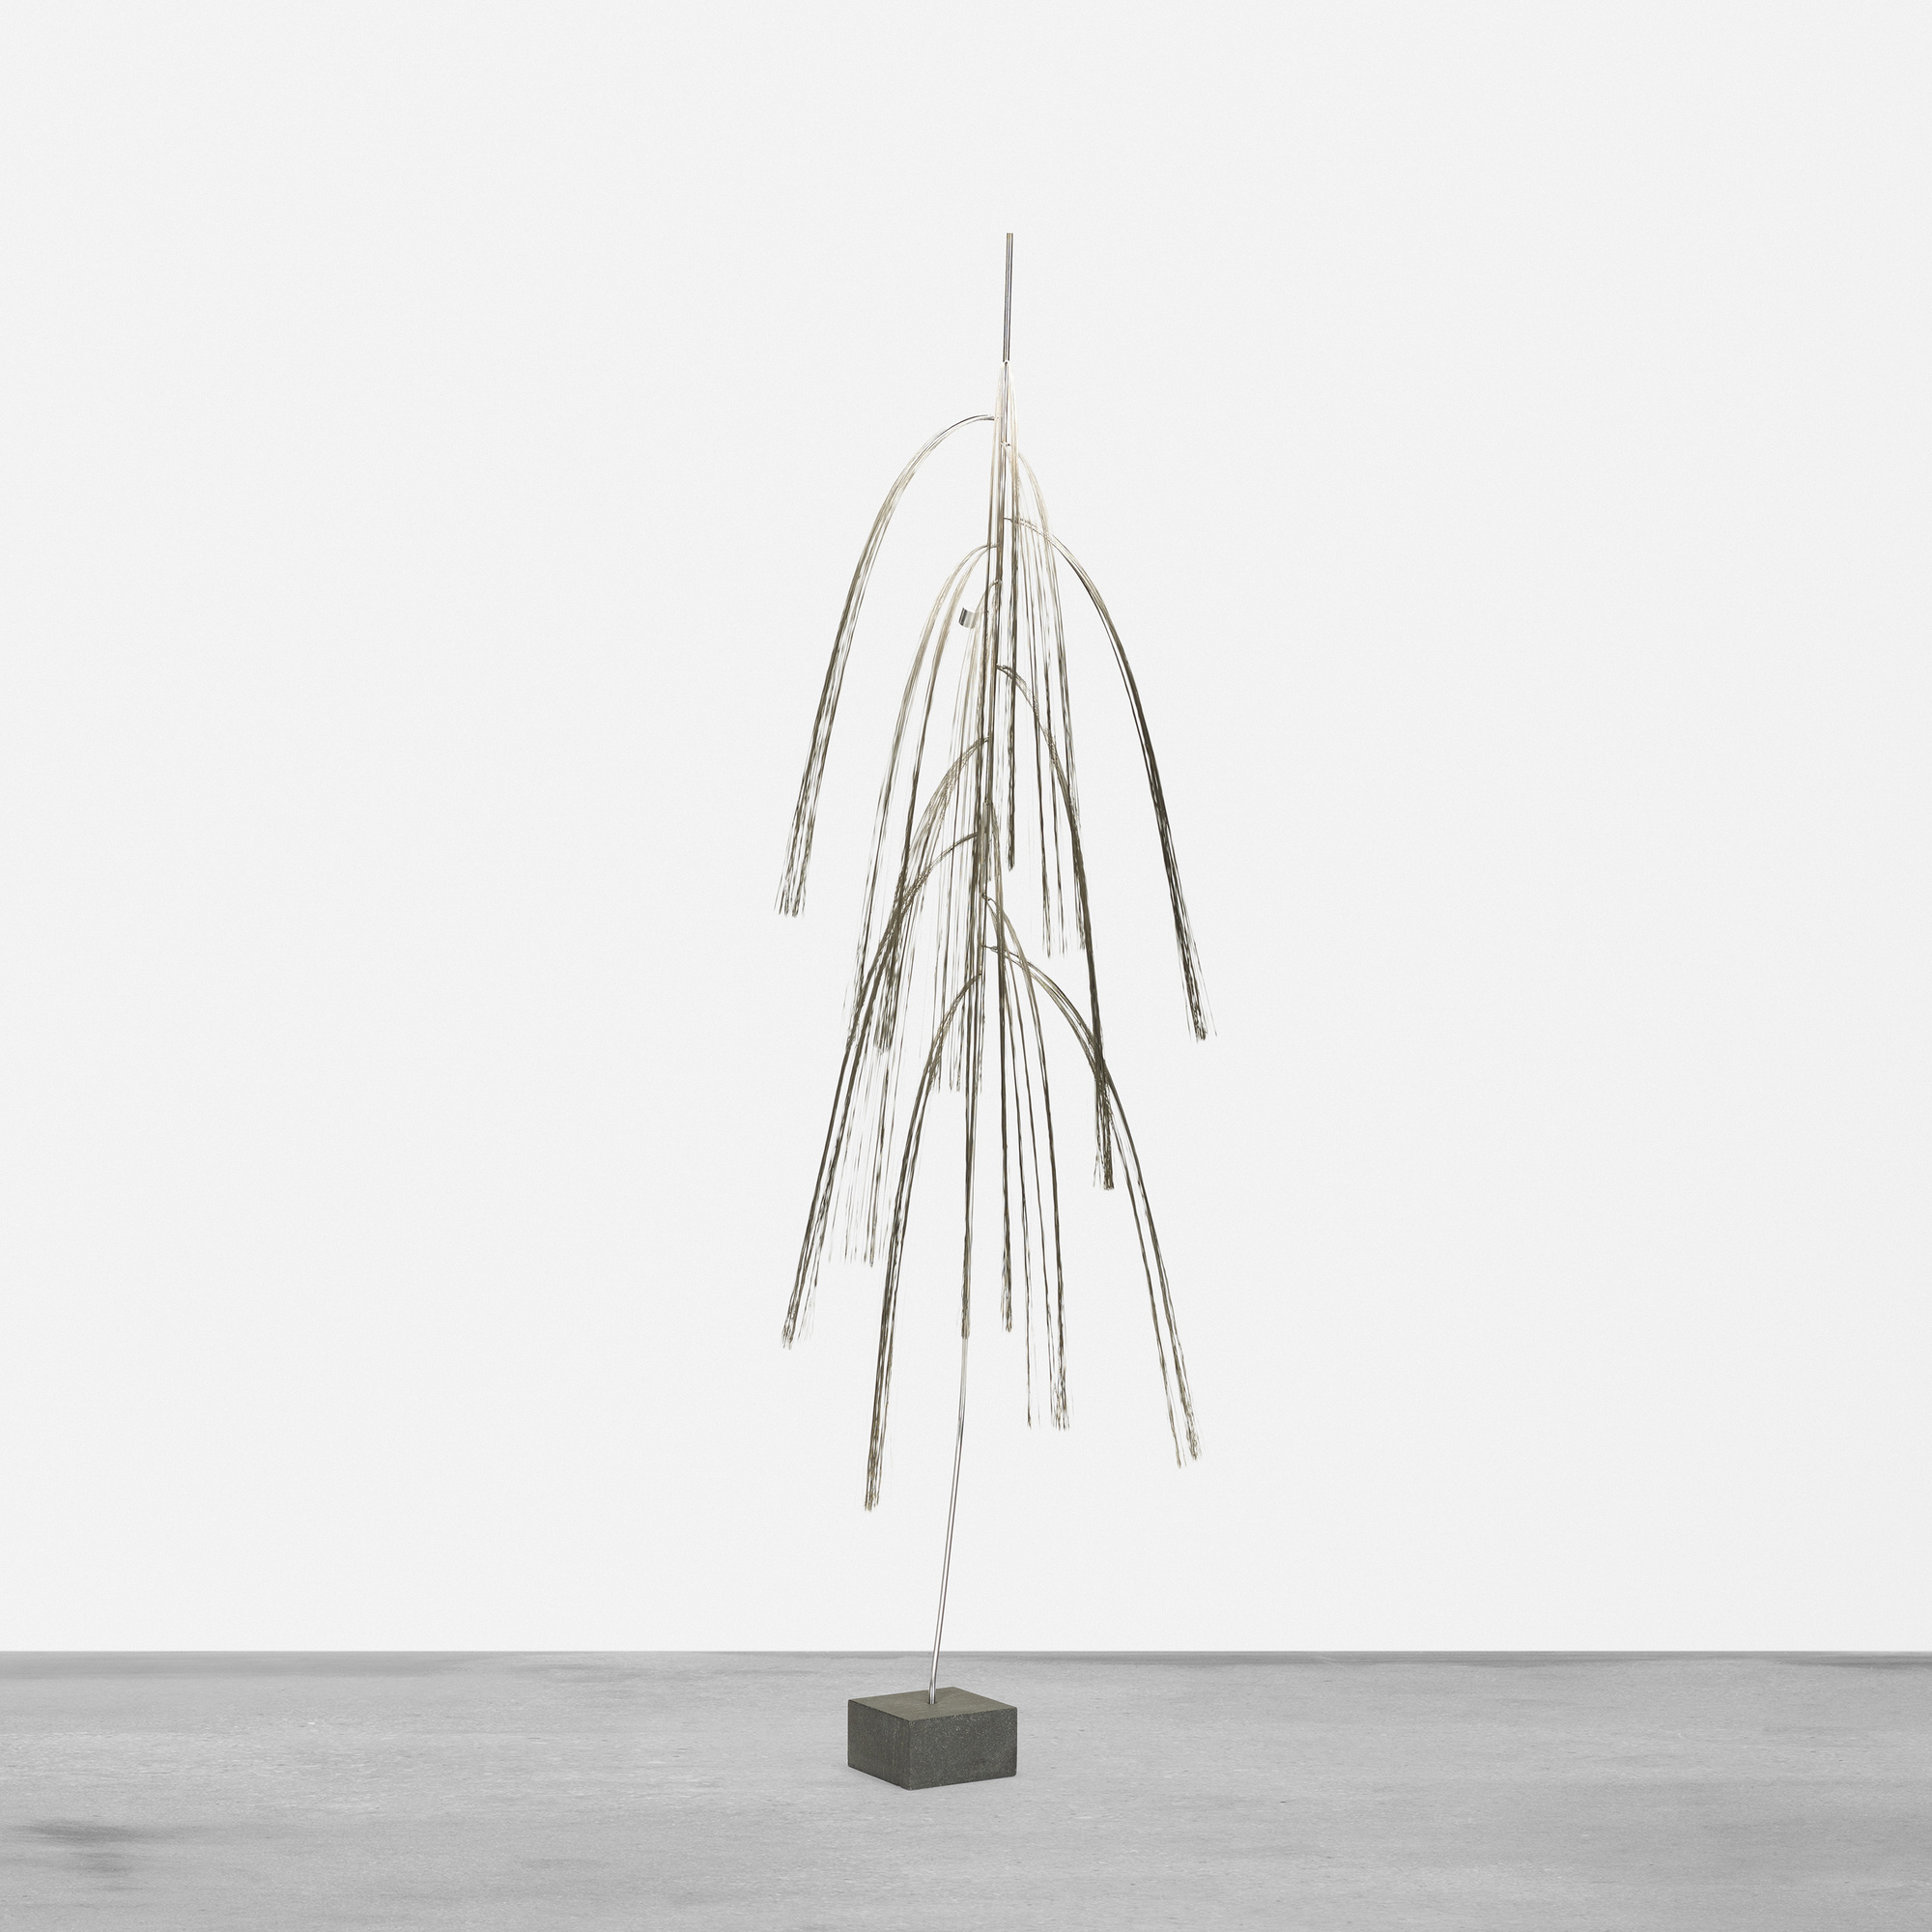 139: HARRY BERTOIA, Untitled (Wire Form)